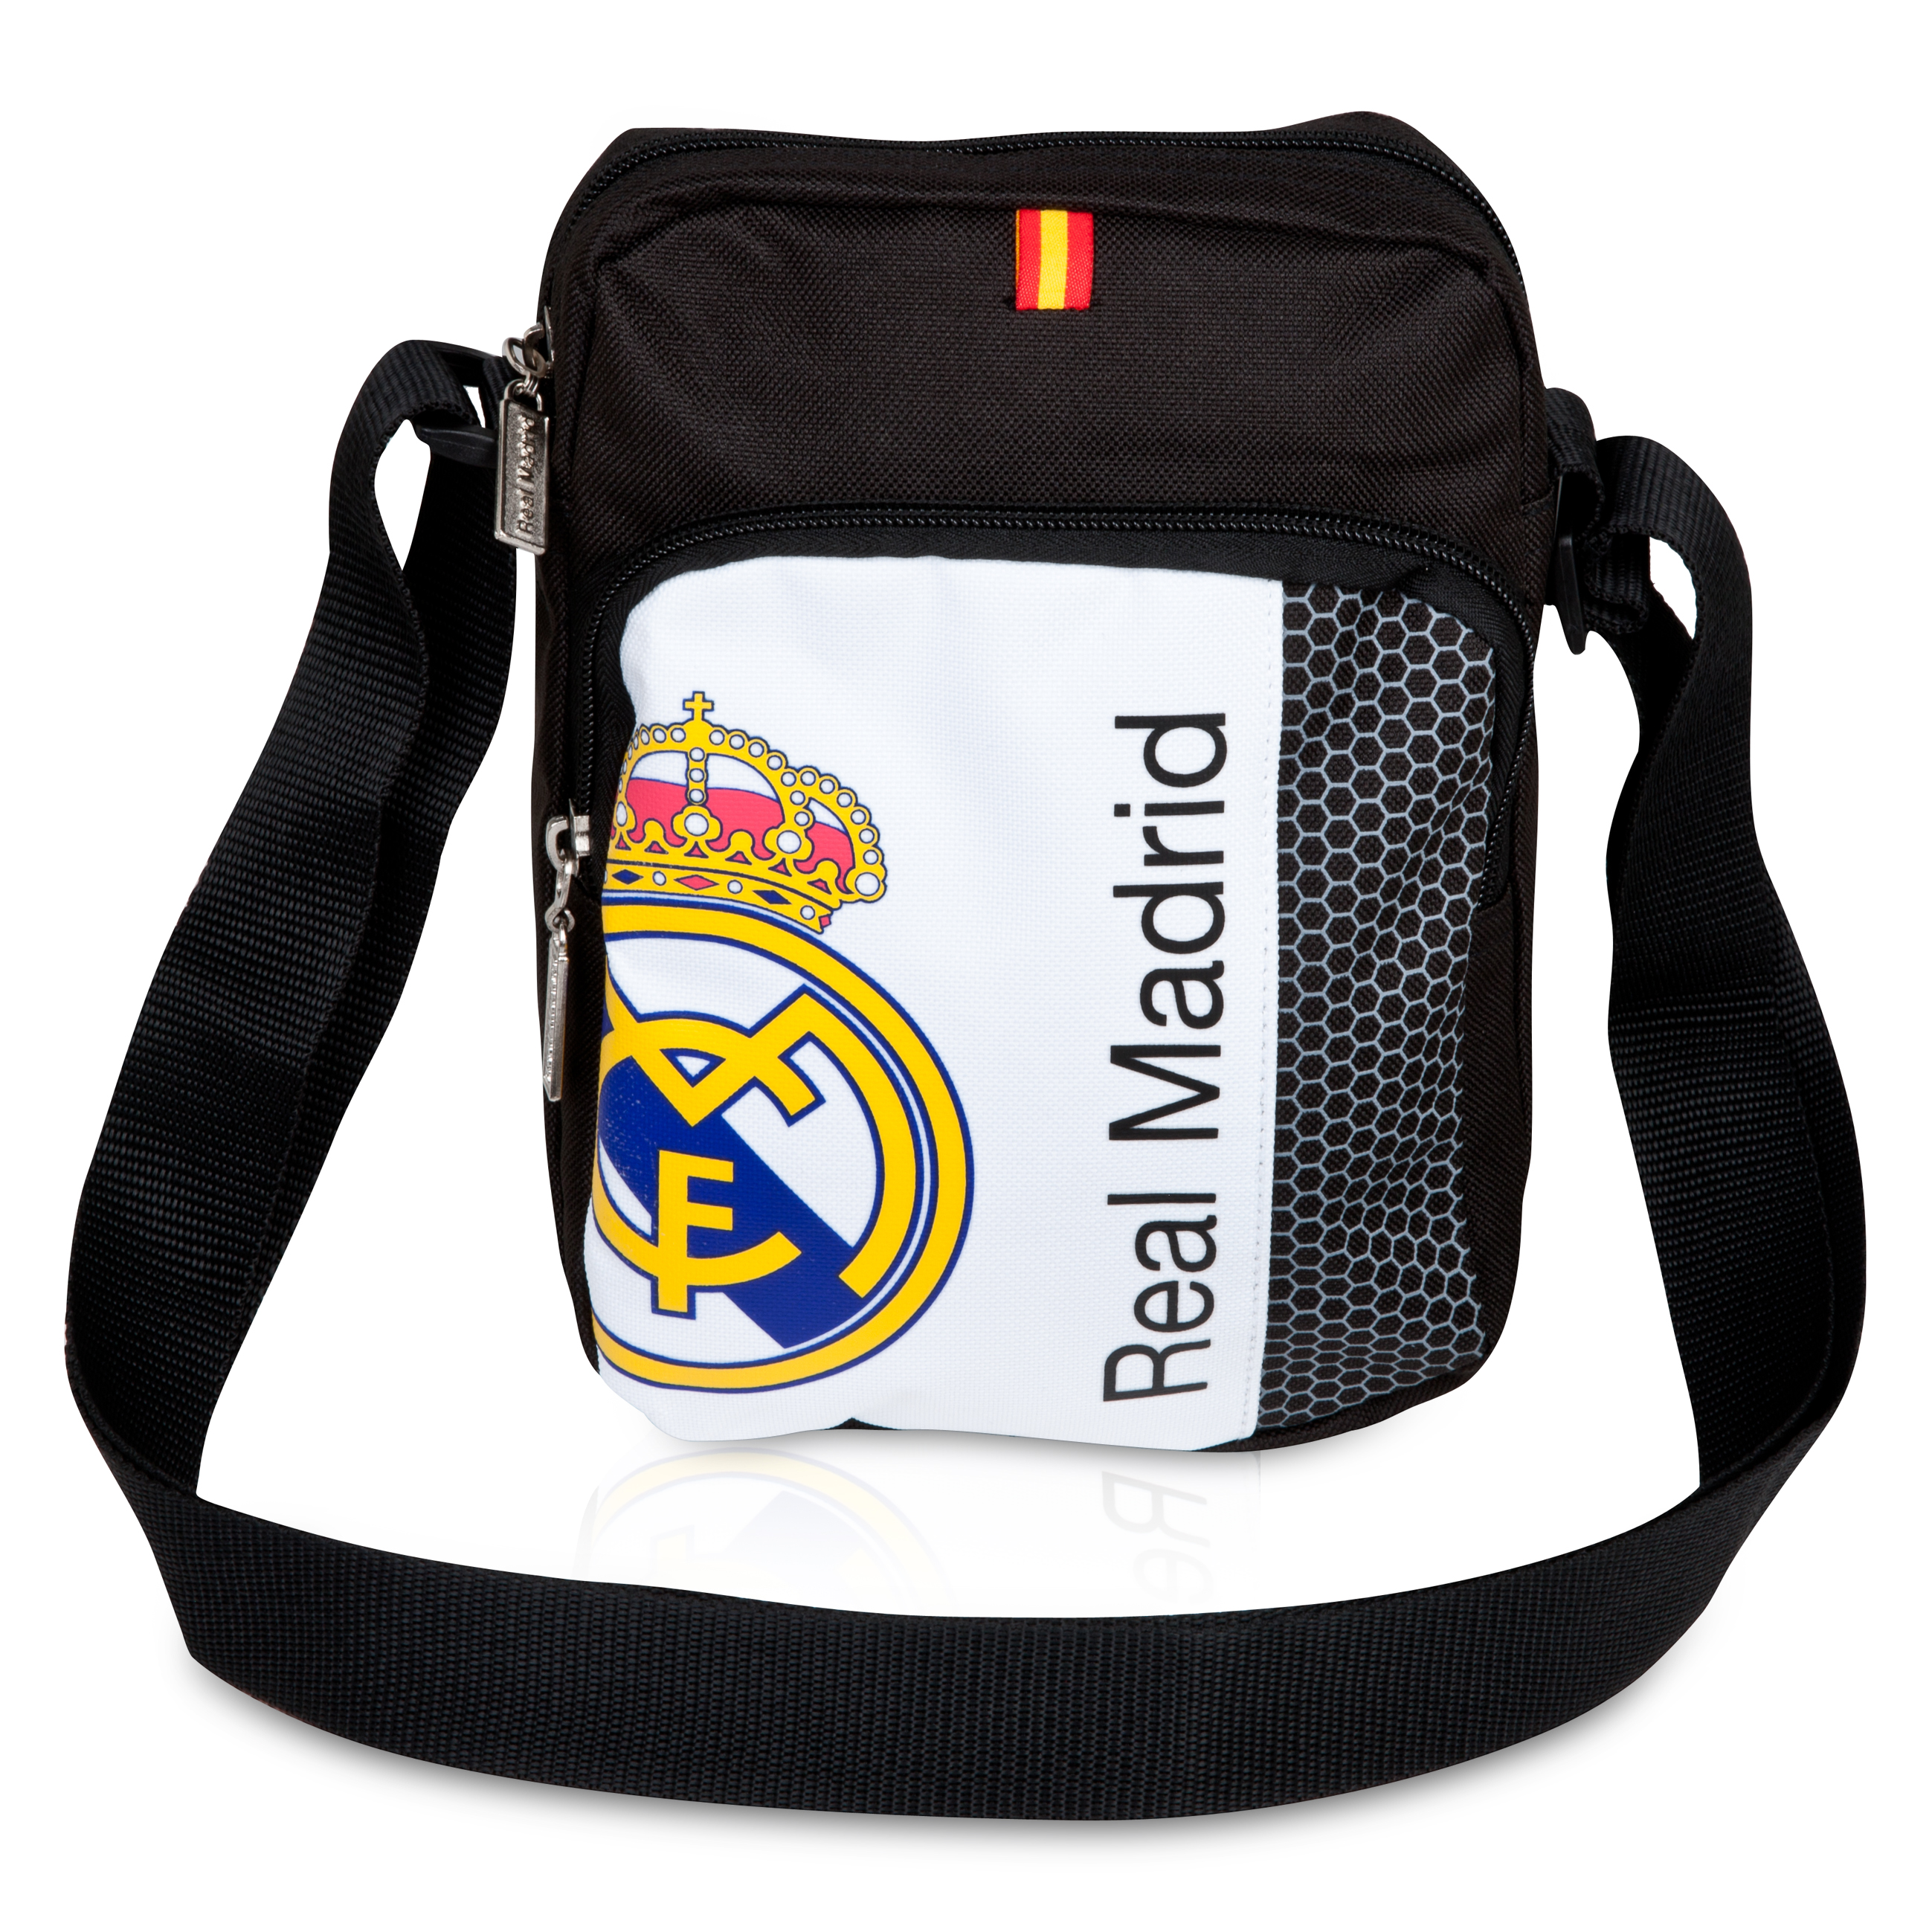 Bandolera pequea Real Madrid - 16 cm